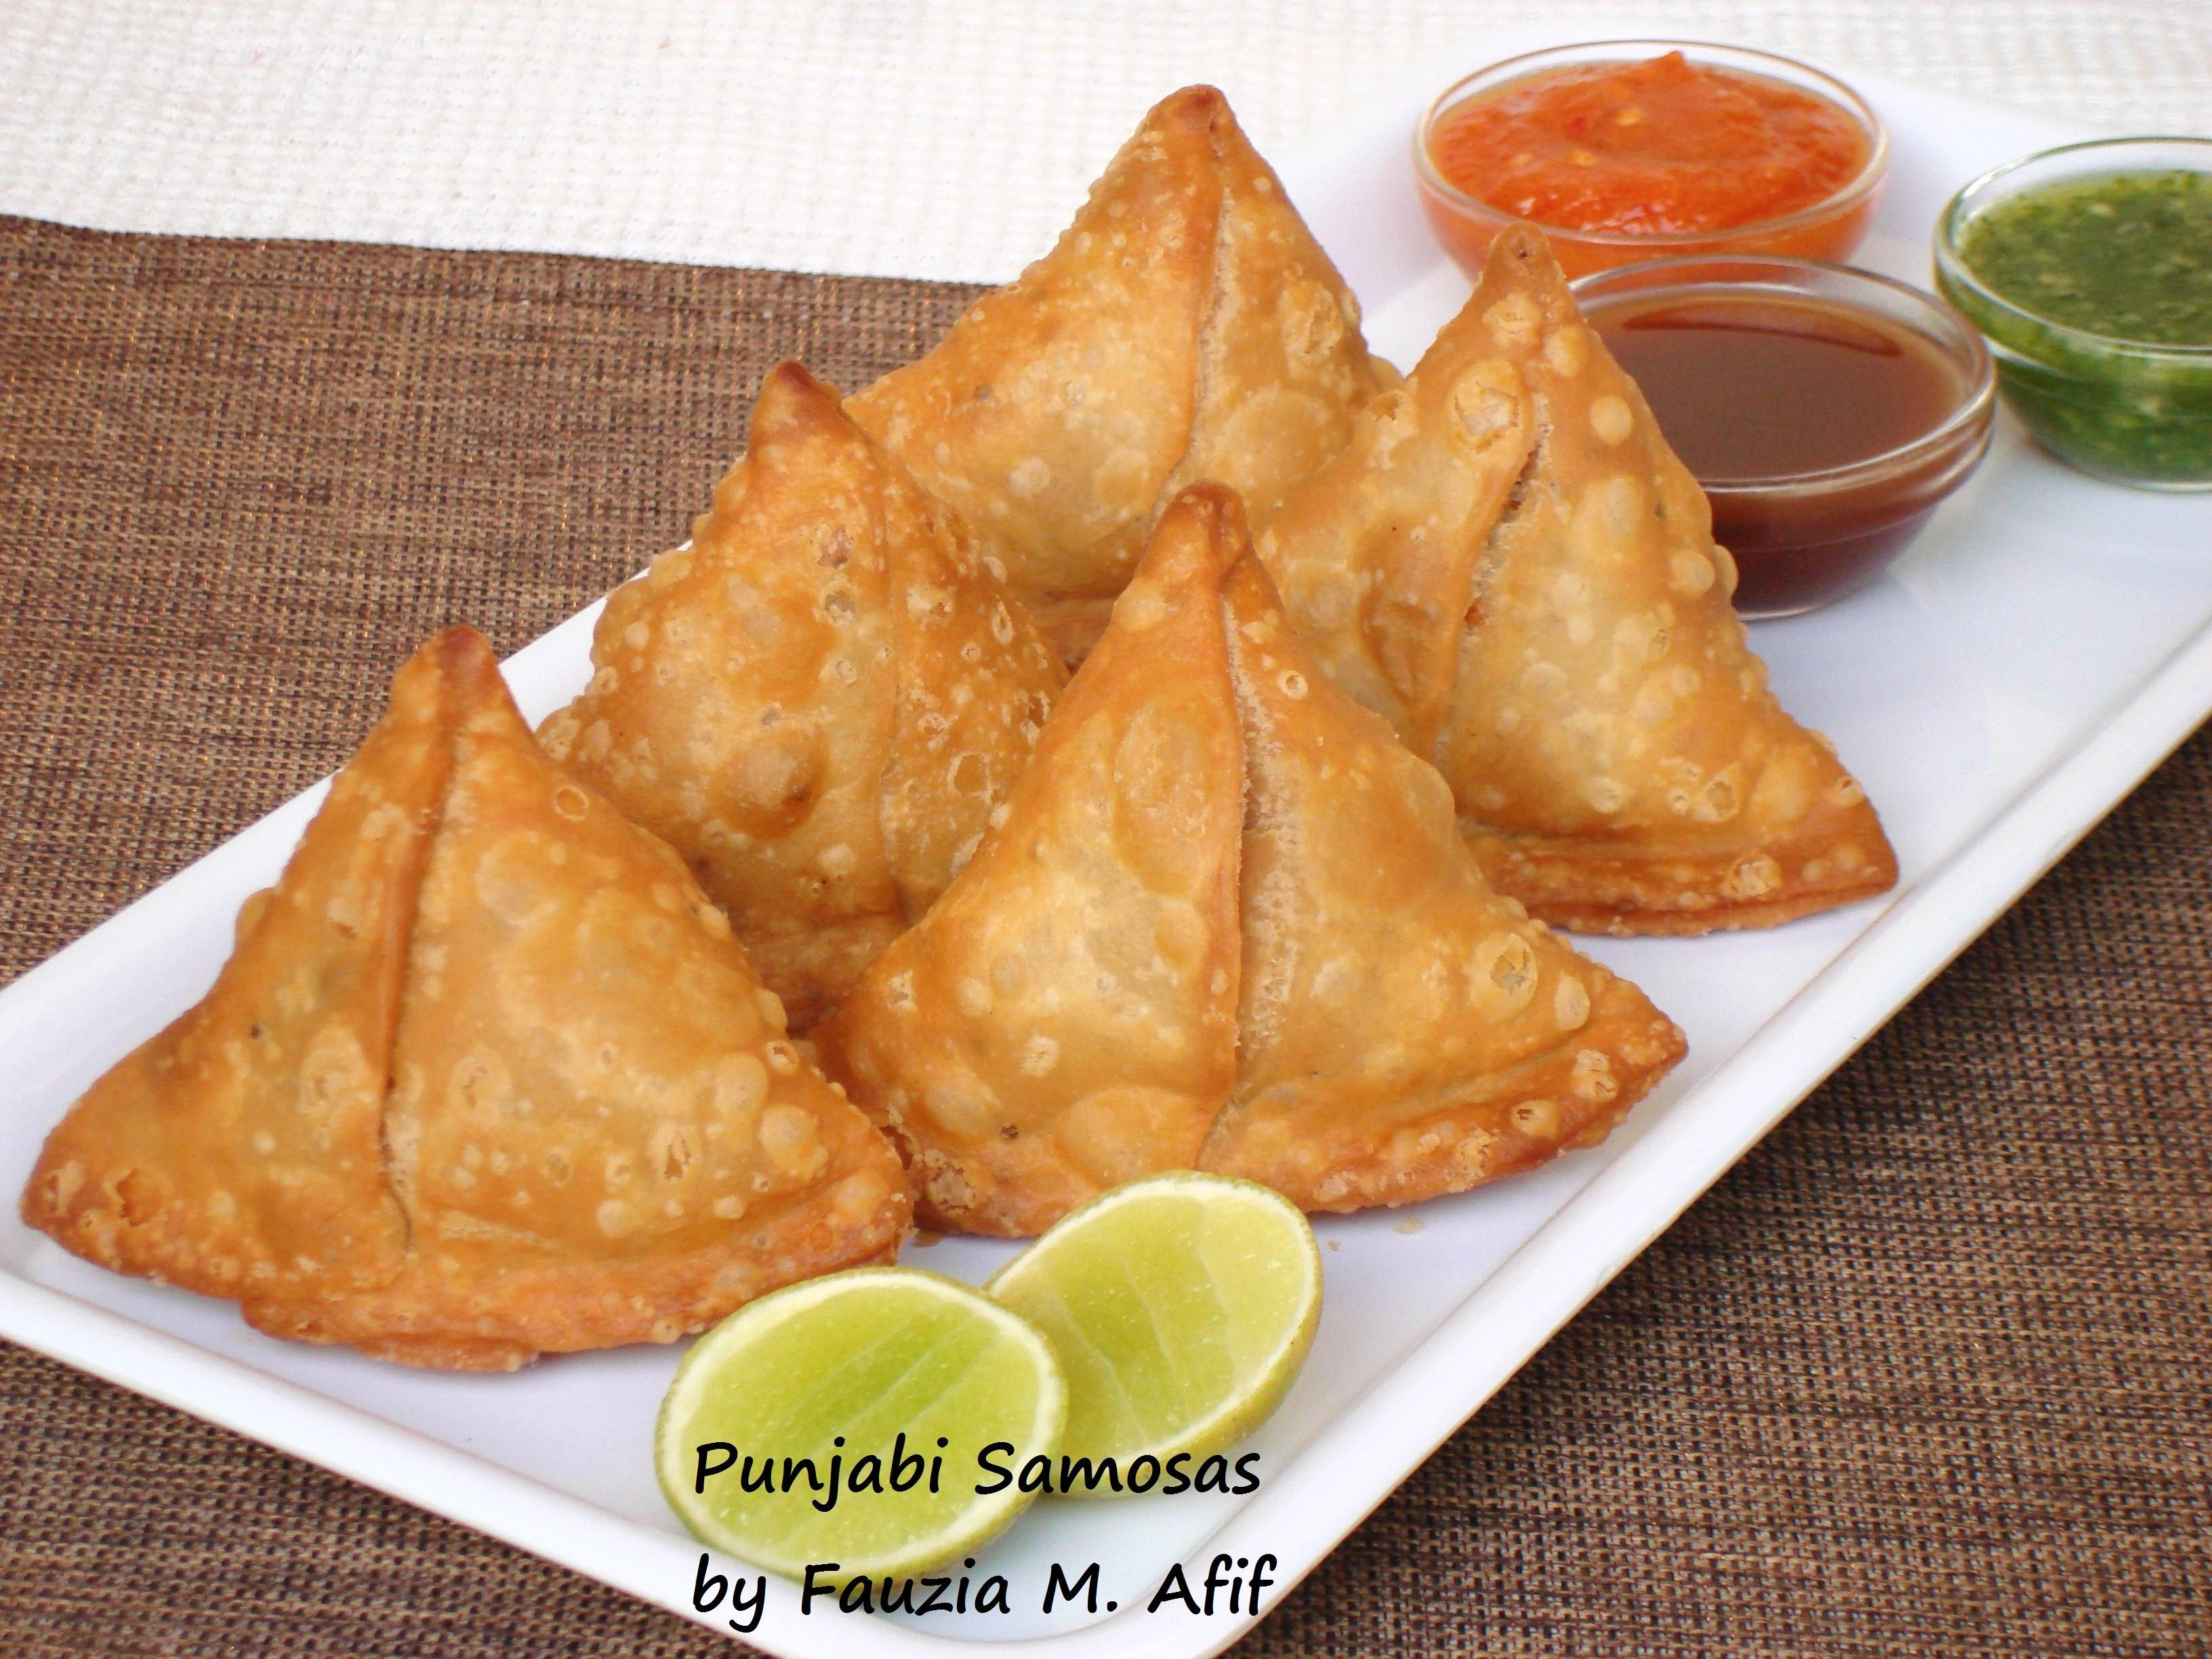 Punjabi samosas pinterest flaky pastry samosas and easy these delicious punjabi aloo samosas are made with a crisp and flaky pastry dough and stuffed with a spicy potato and pea filling they are incredibly easy forumfinder Gallery